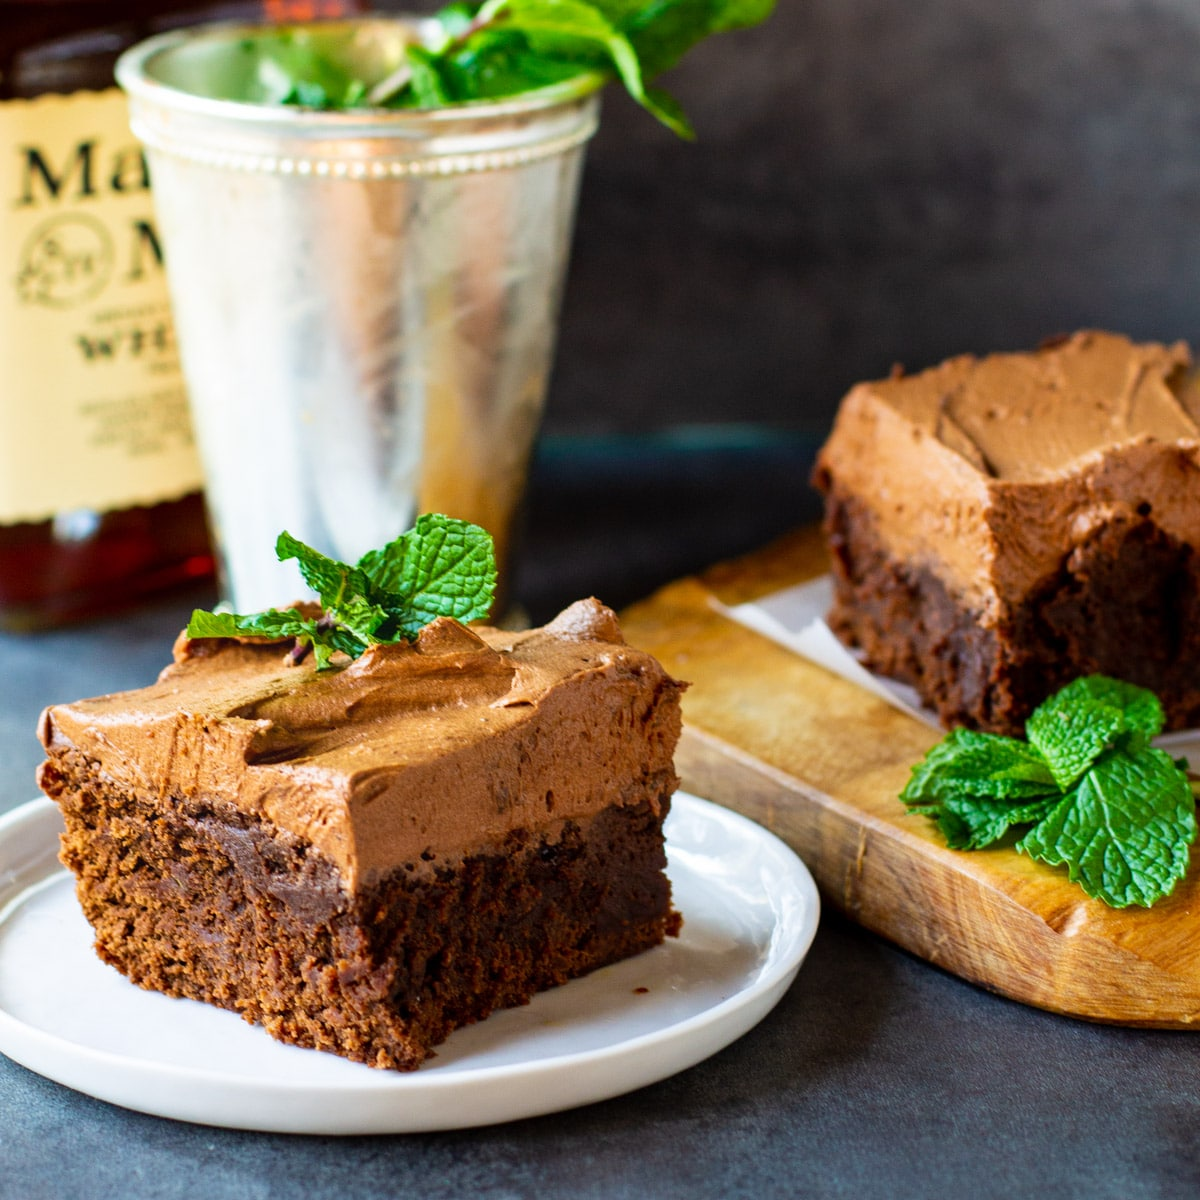 Mint Julep Brownie with Mint Julep in a cup.